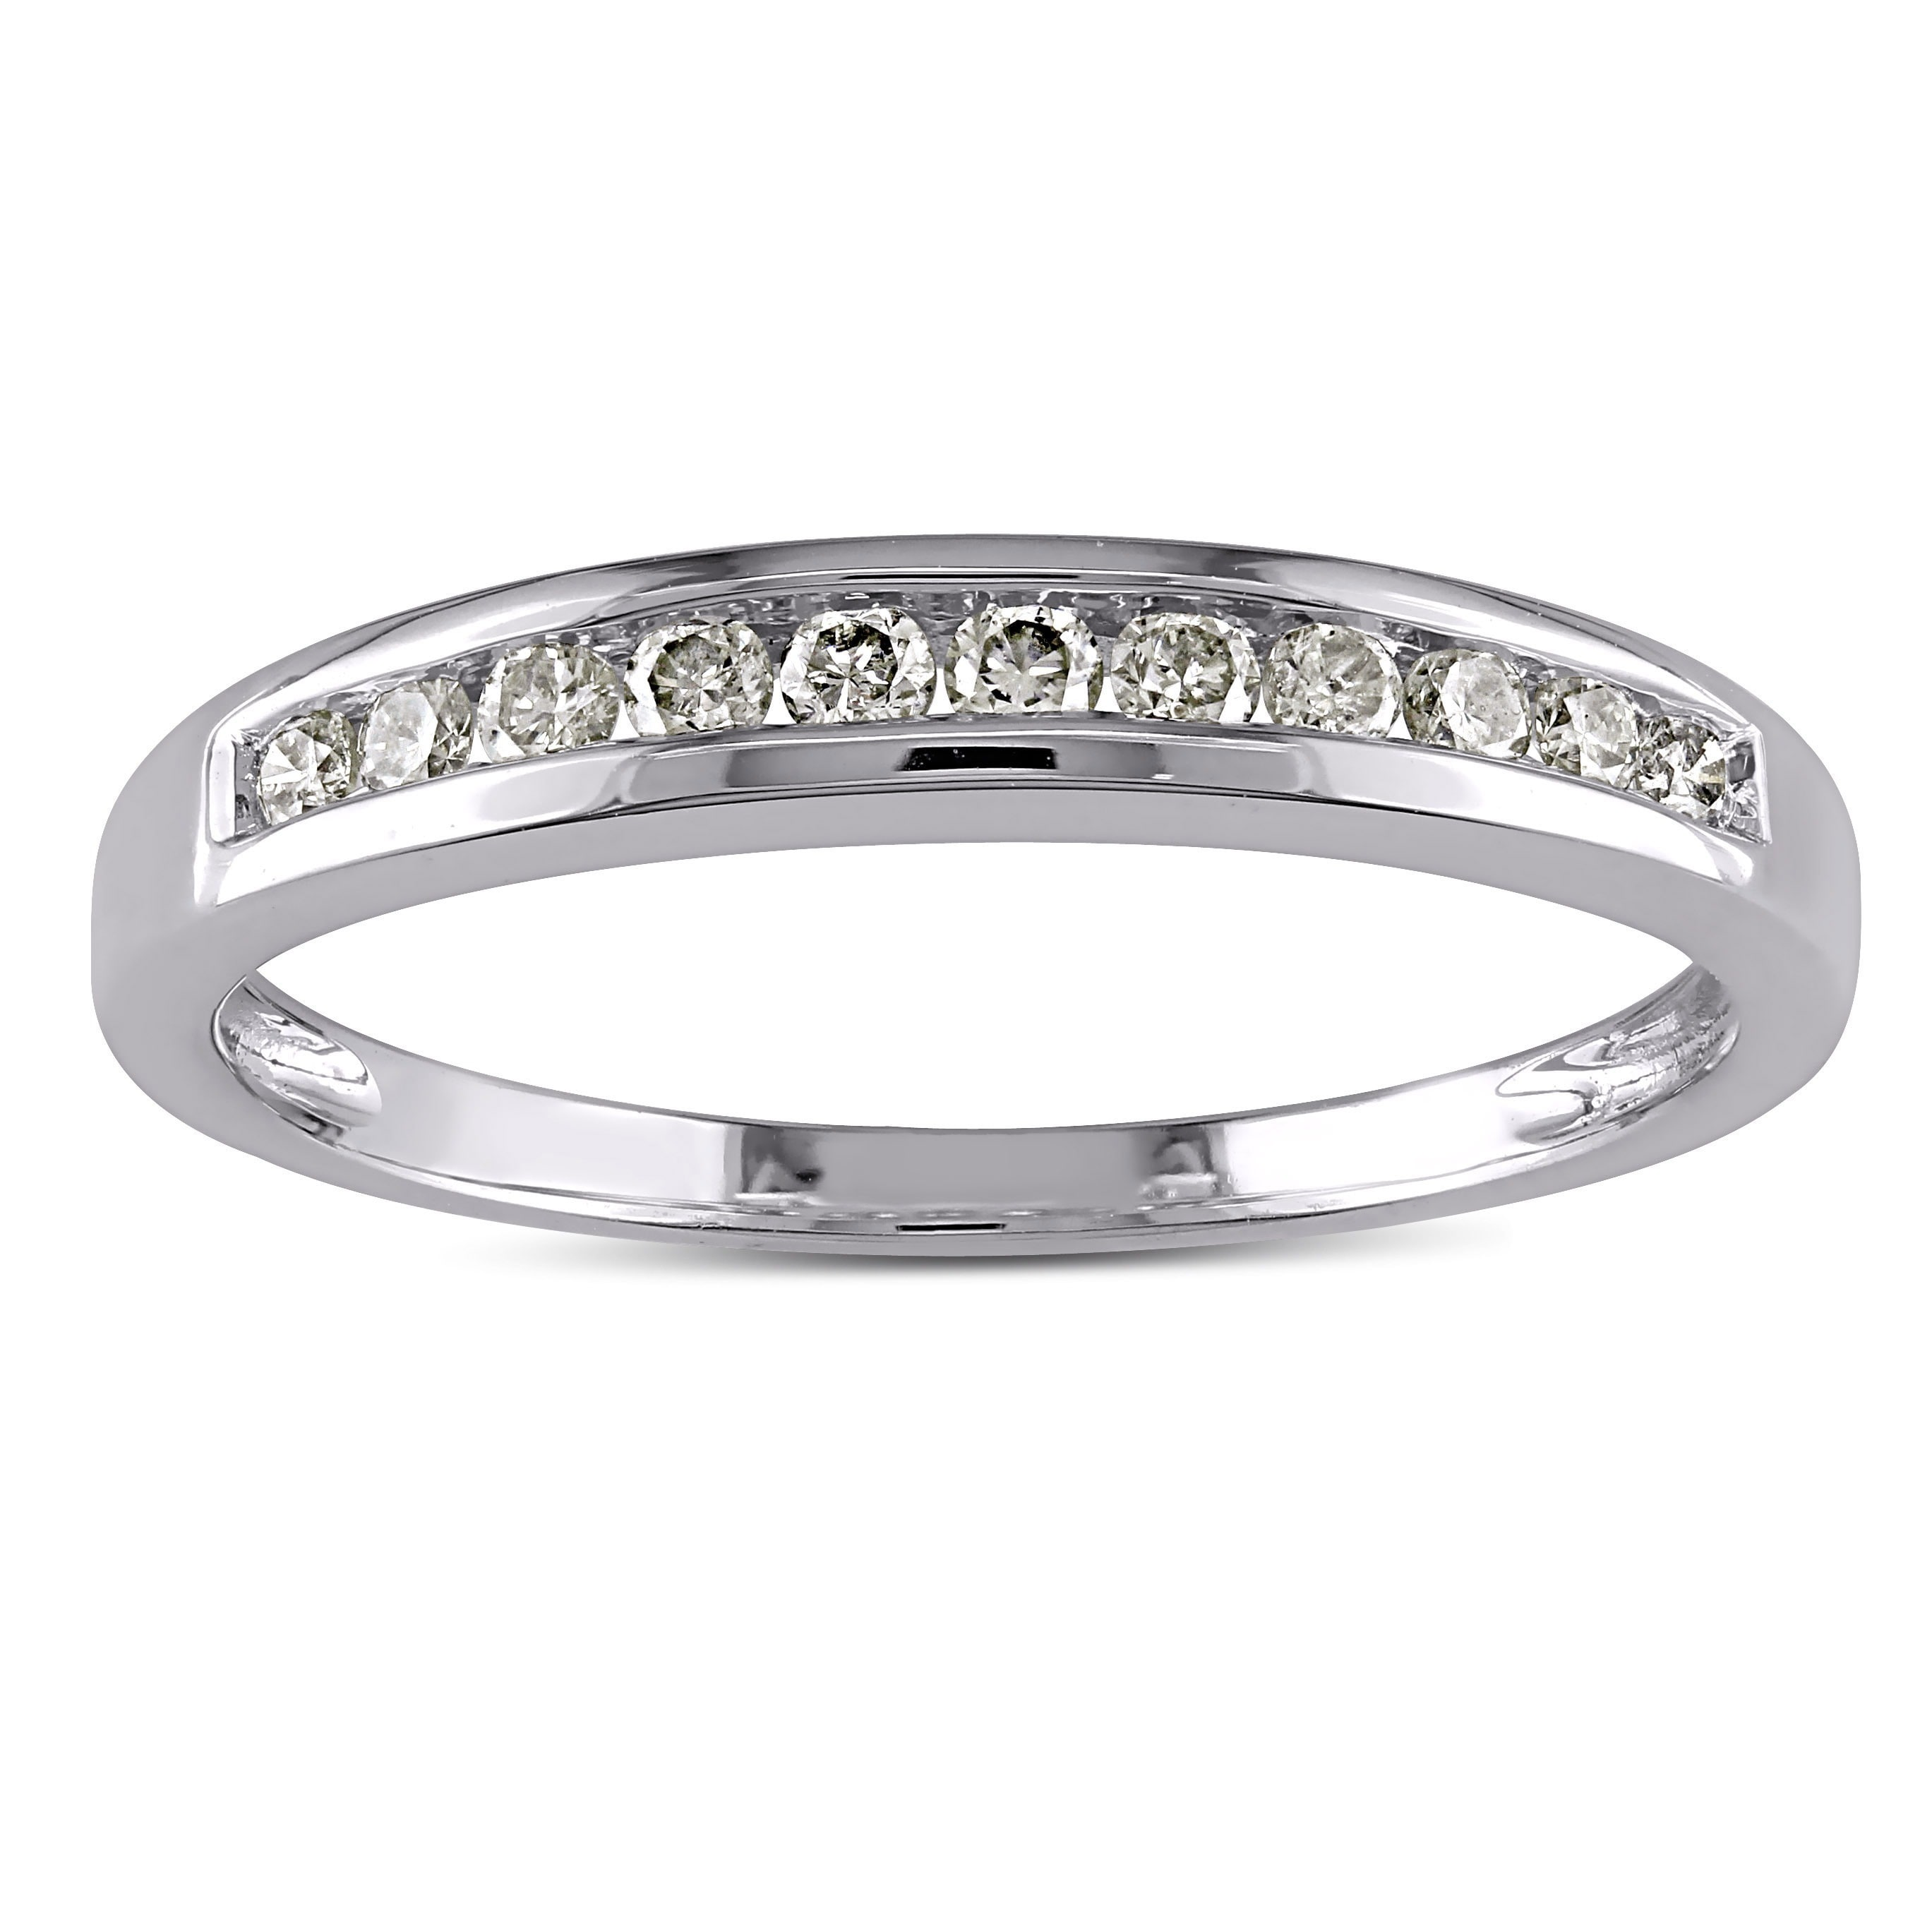 Miadora 10k White Gold 1/4ct TDW Diamond Stackable Channe...